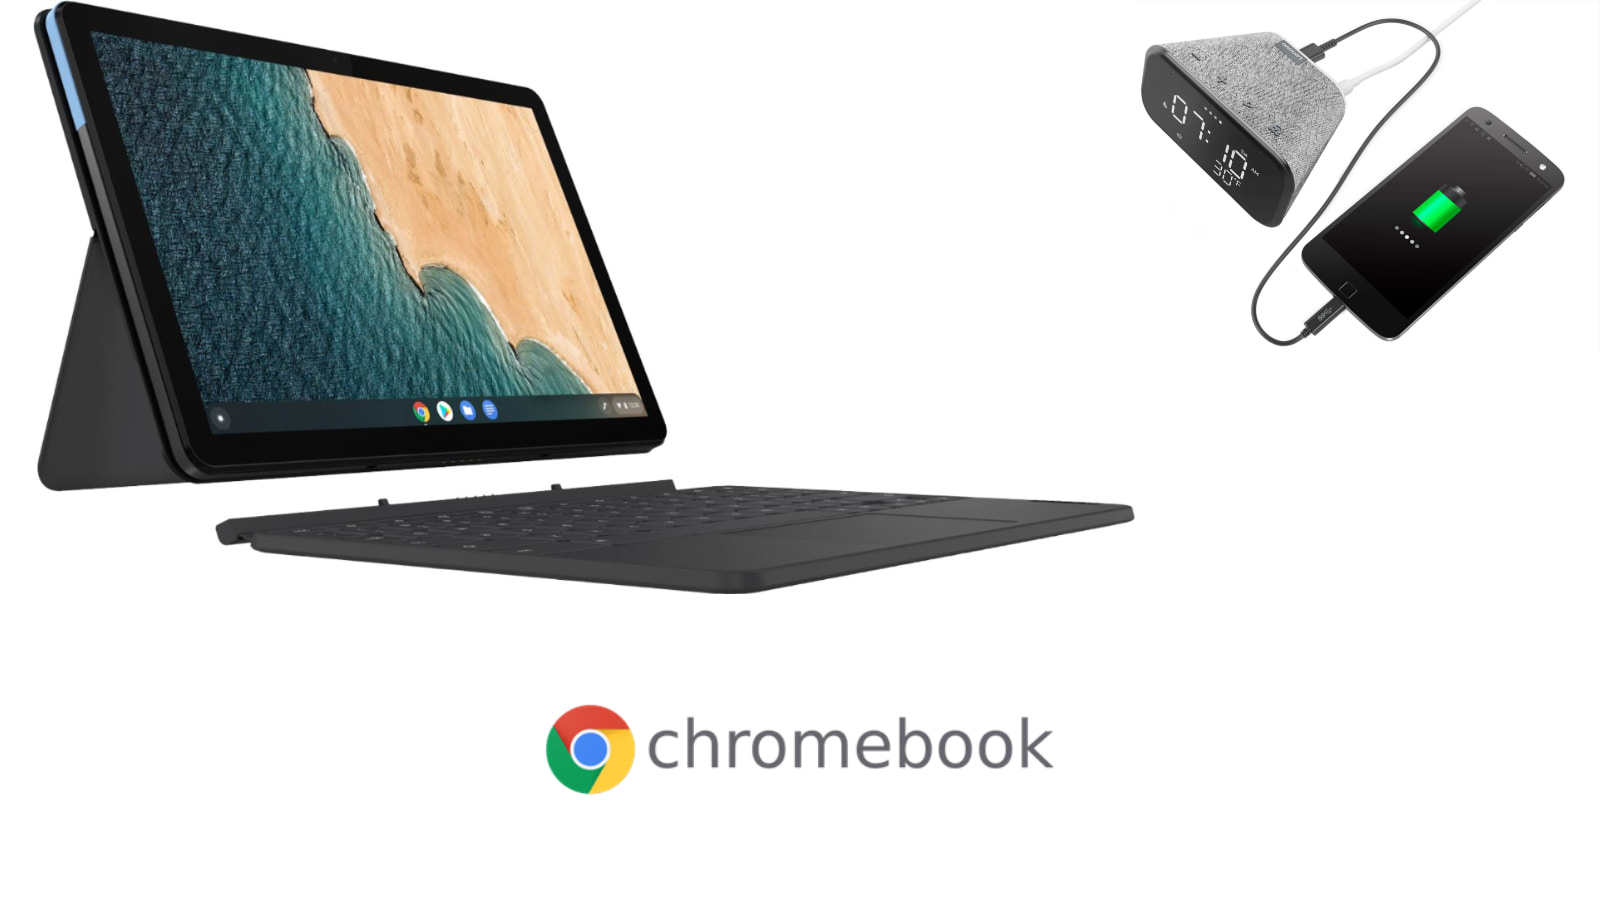 Price Drop: The Lenovo Chromebook Duet is now $229 (Bonus: $15 Smart clock)